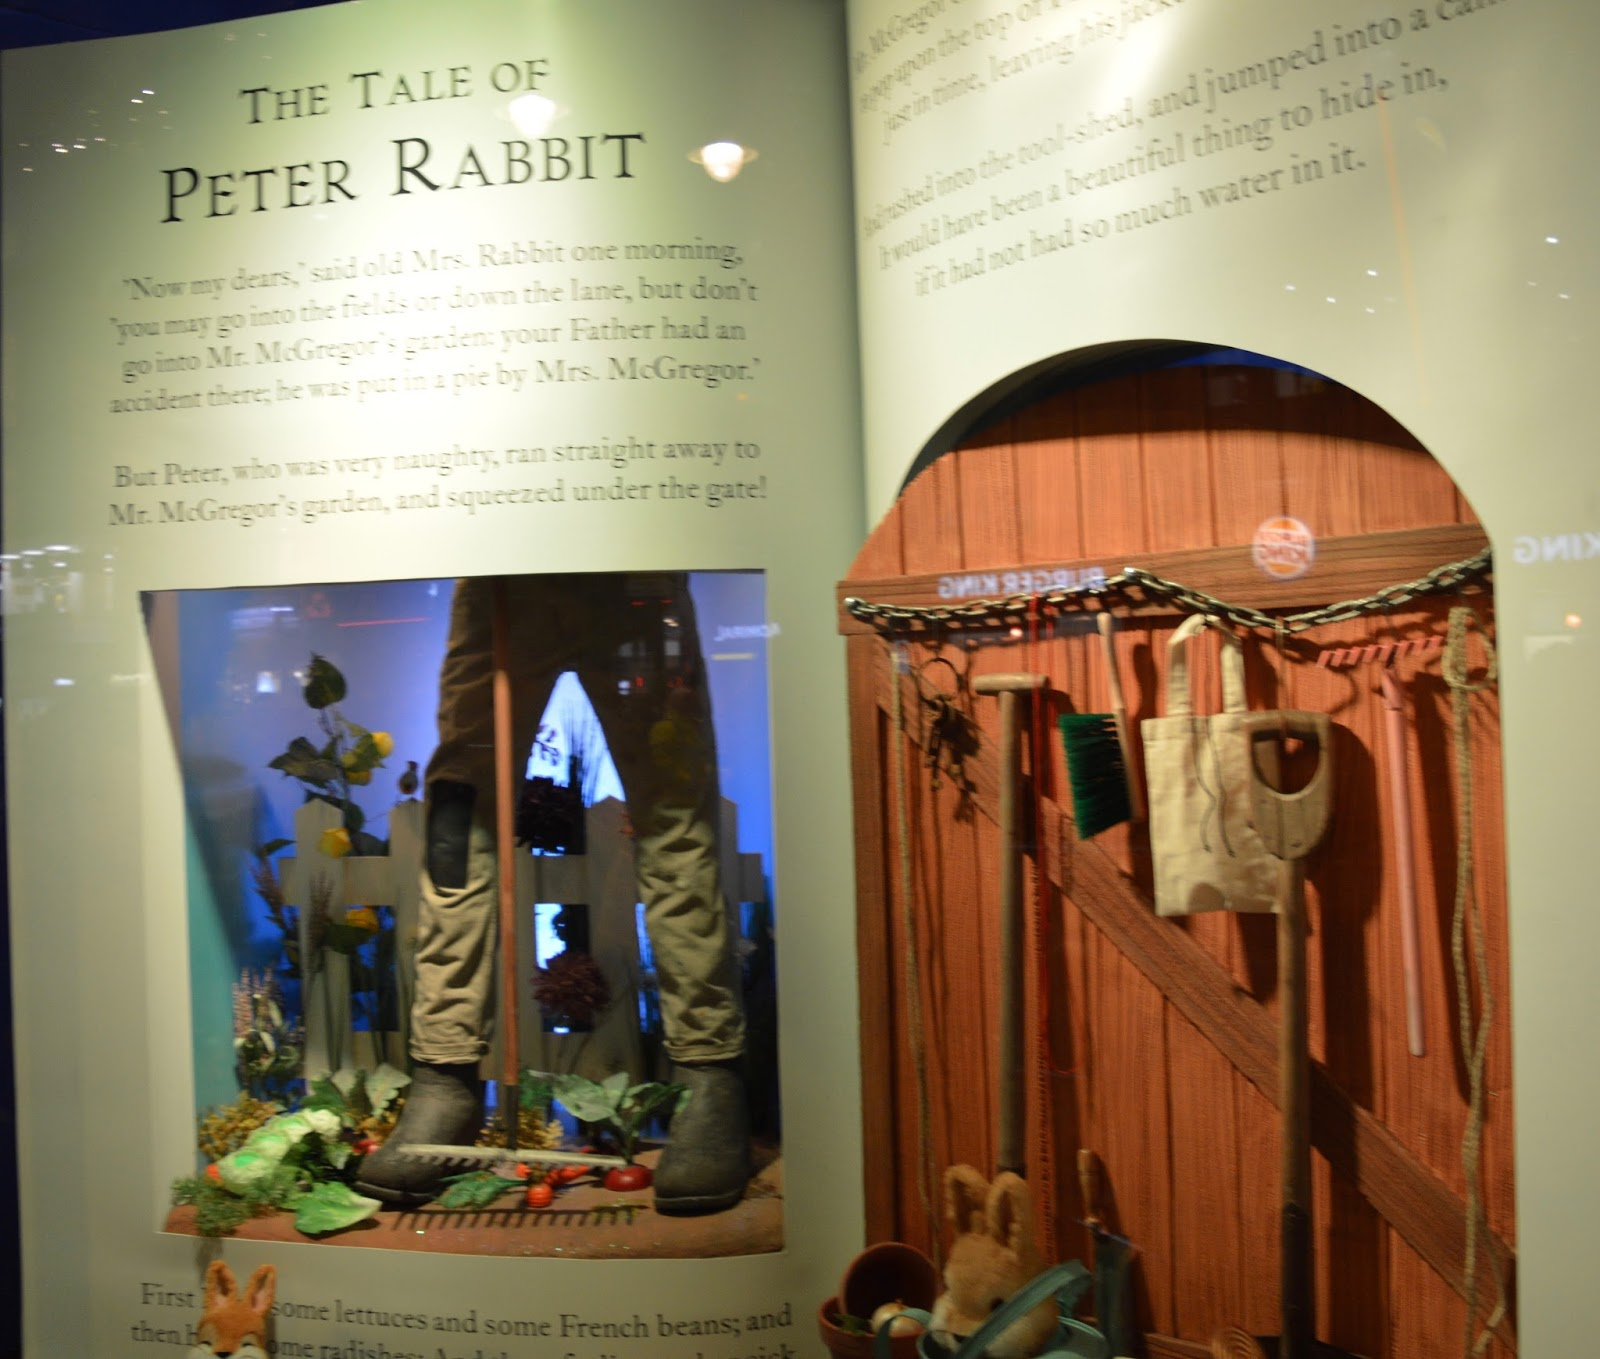 Fenwick's Window Newcastle 2016. Beatrix Potter / Peter Rabbit theme - Peter Rabbit story book